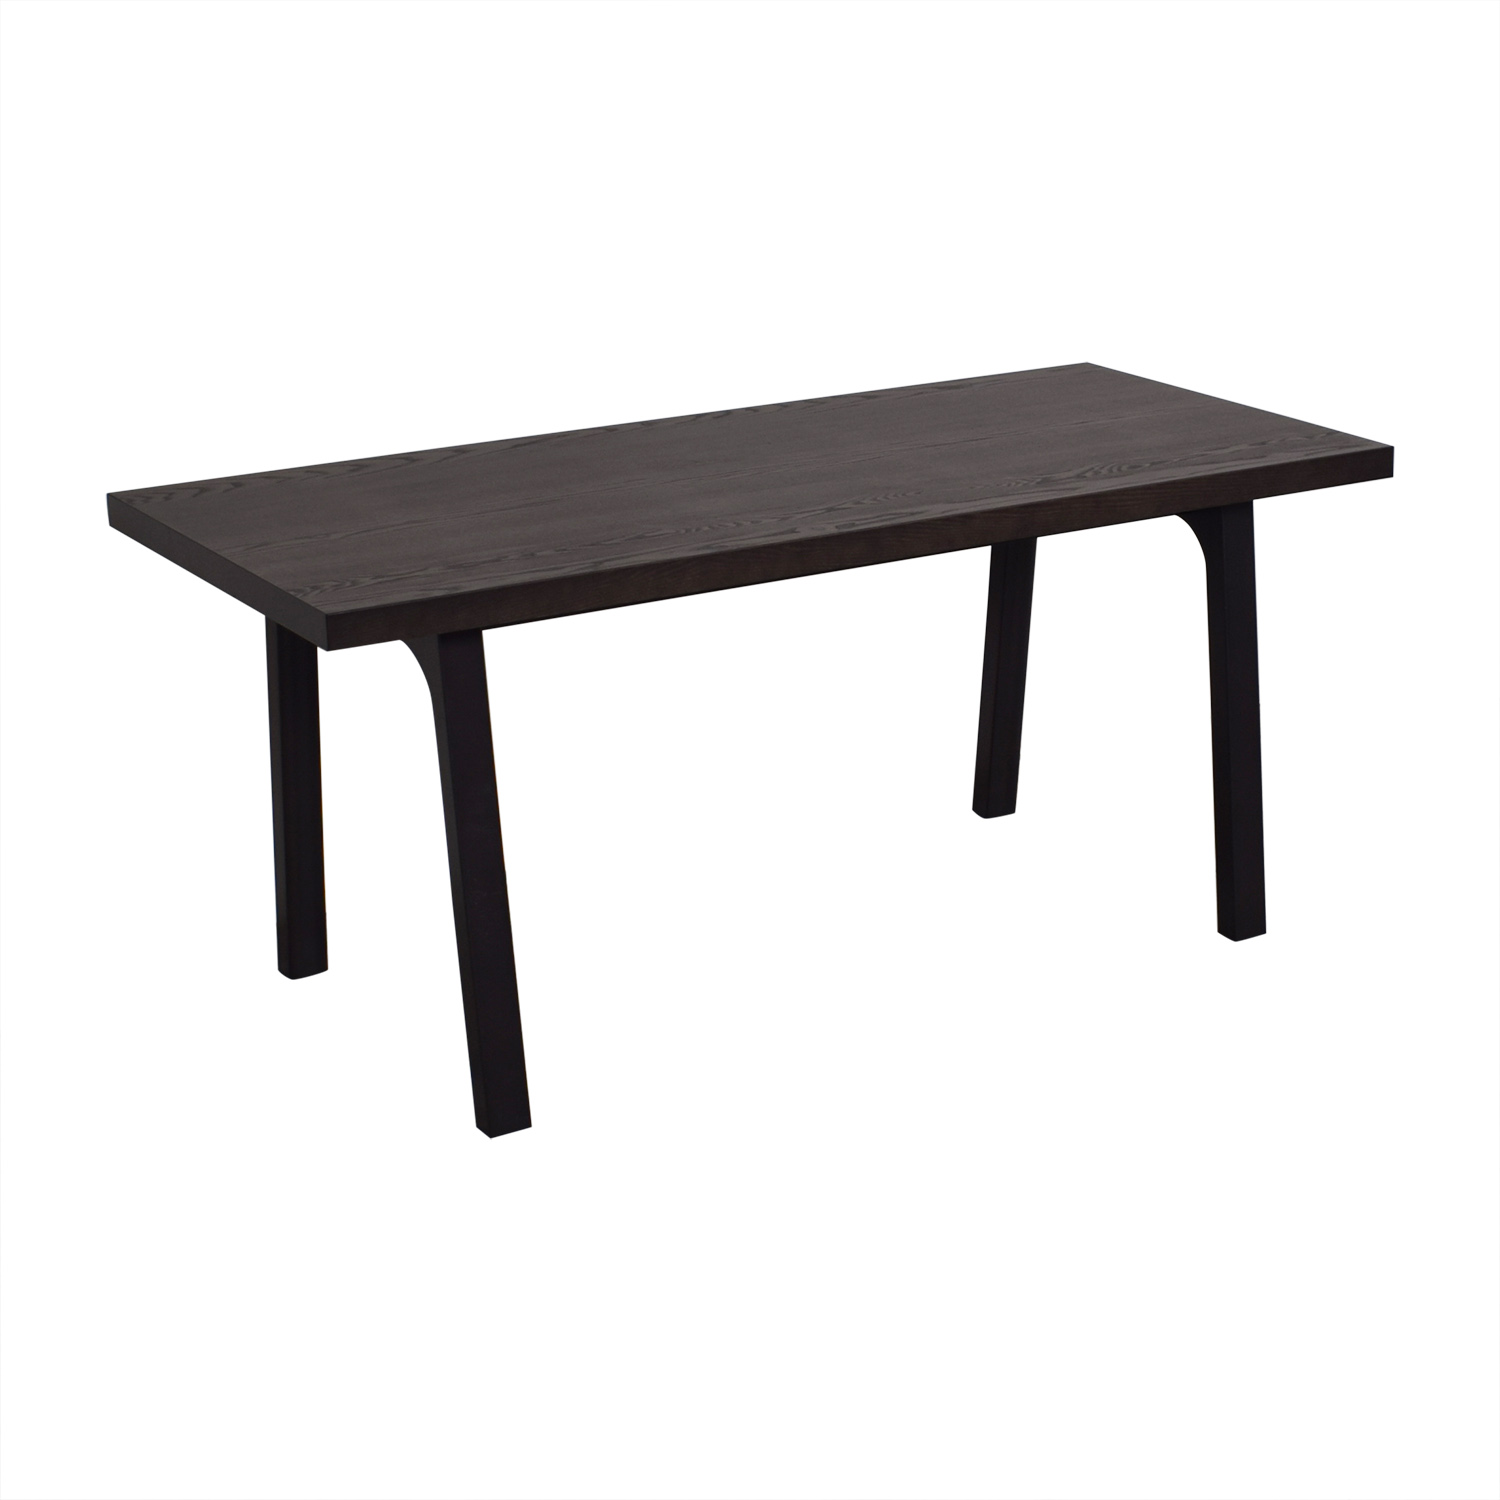 IKEA Ikea Västanby Dining Table discount